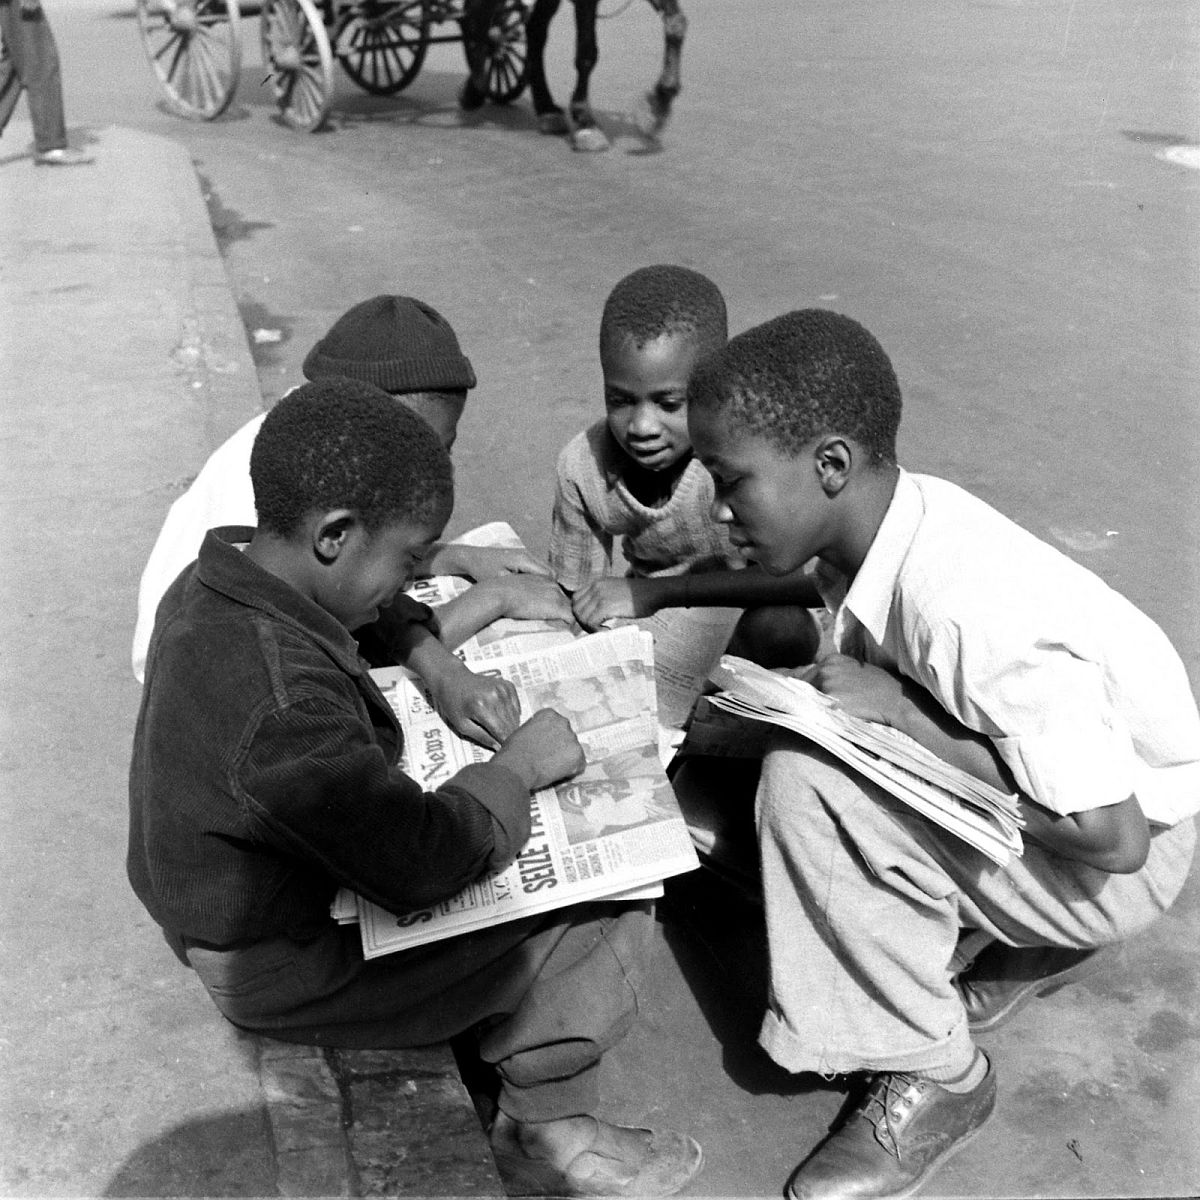 Young boys talk over the day's news, Harlem, 1938.